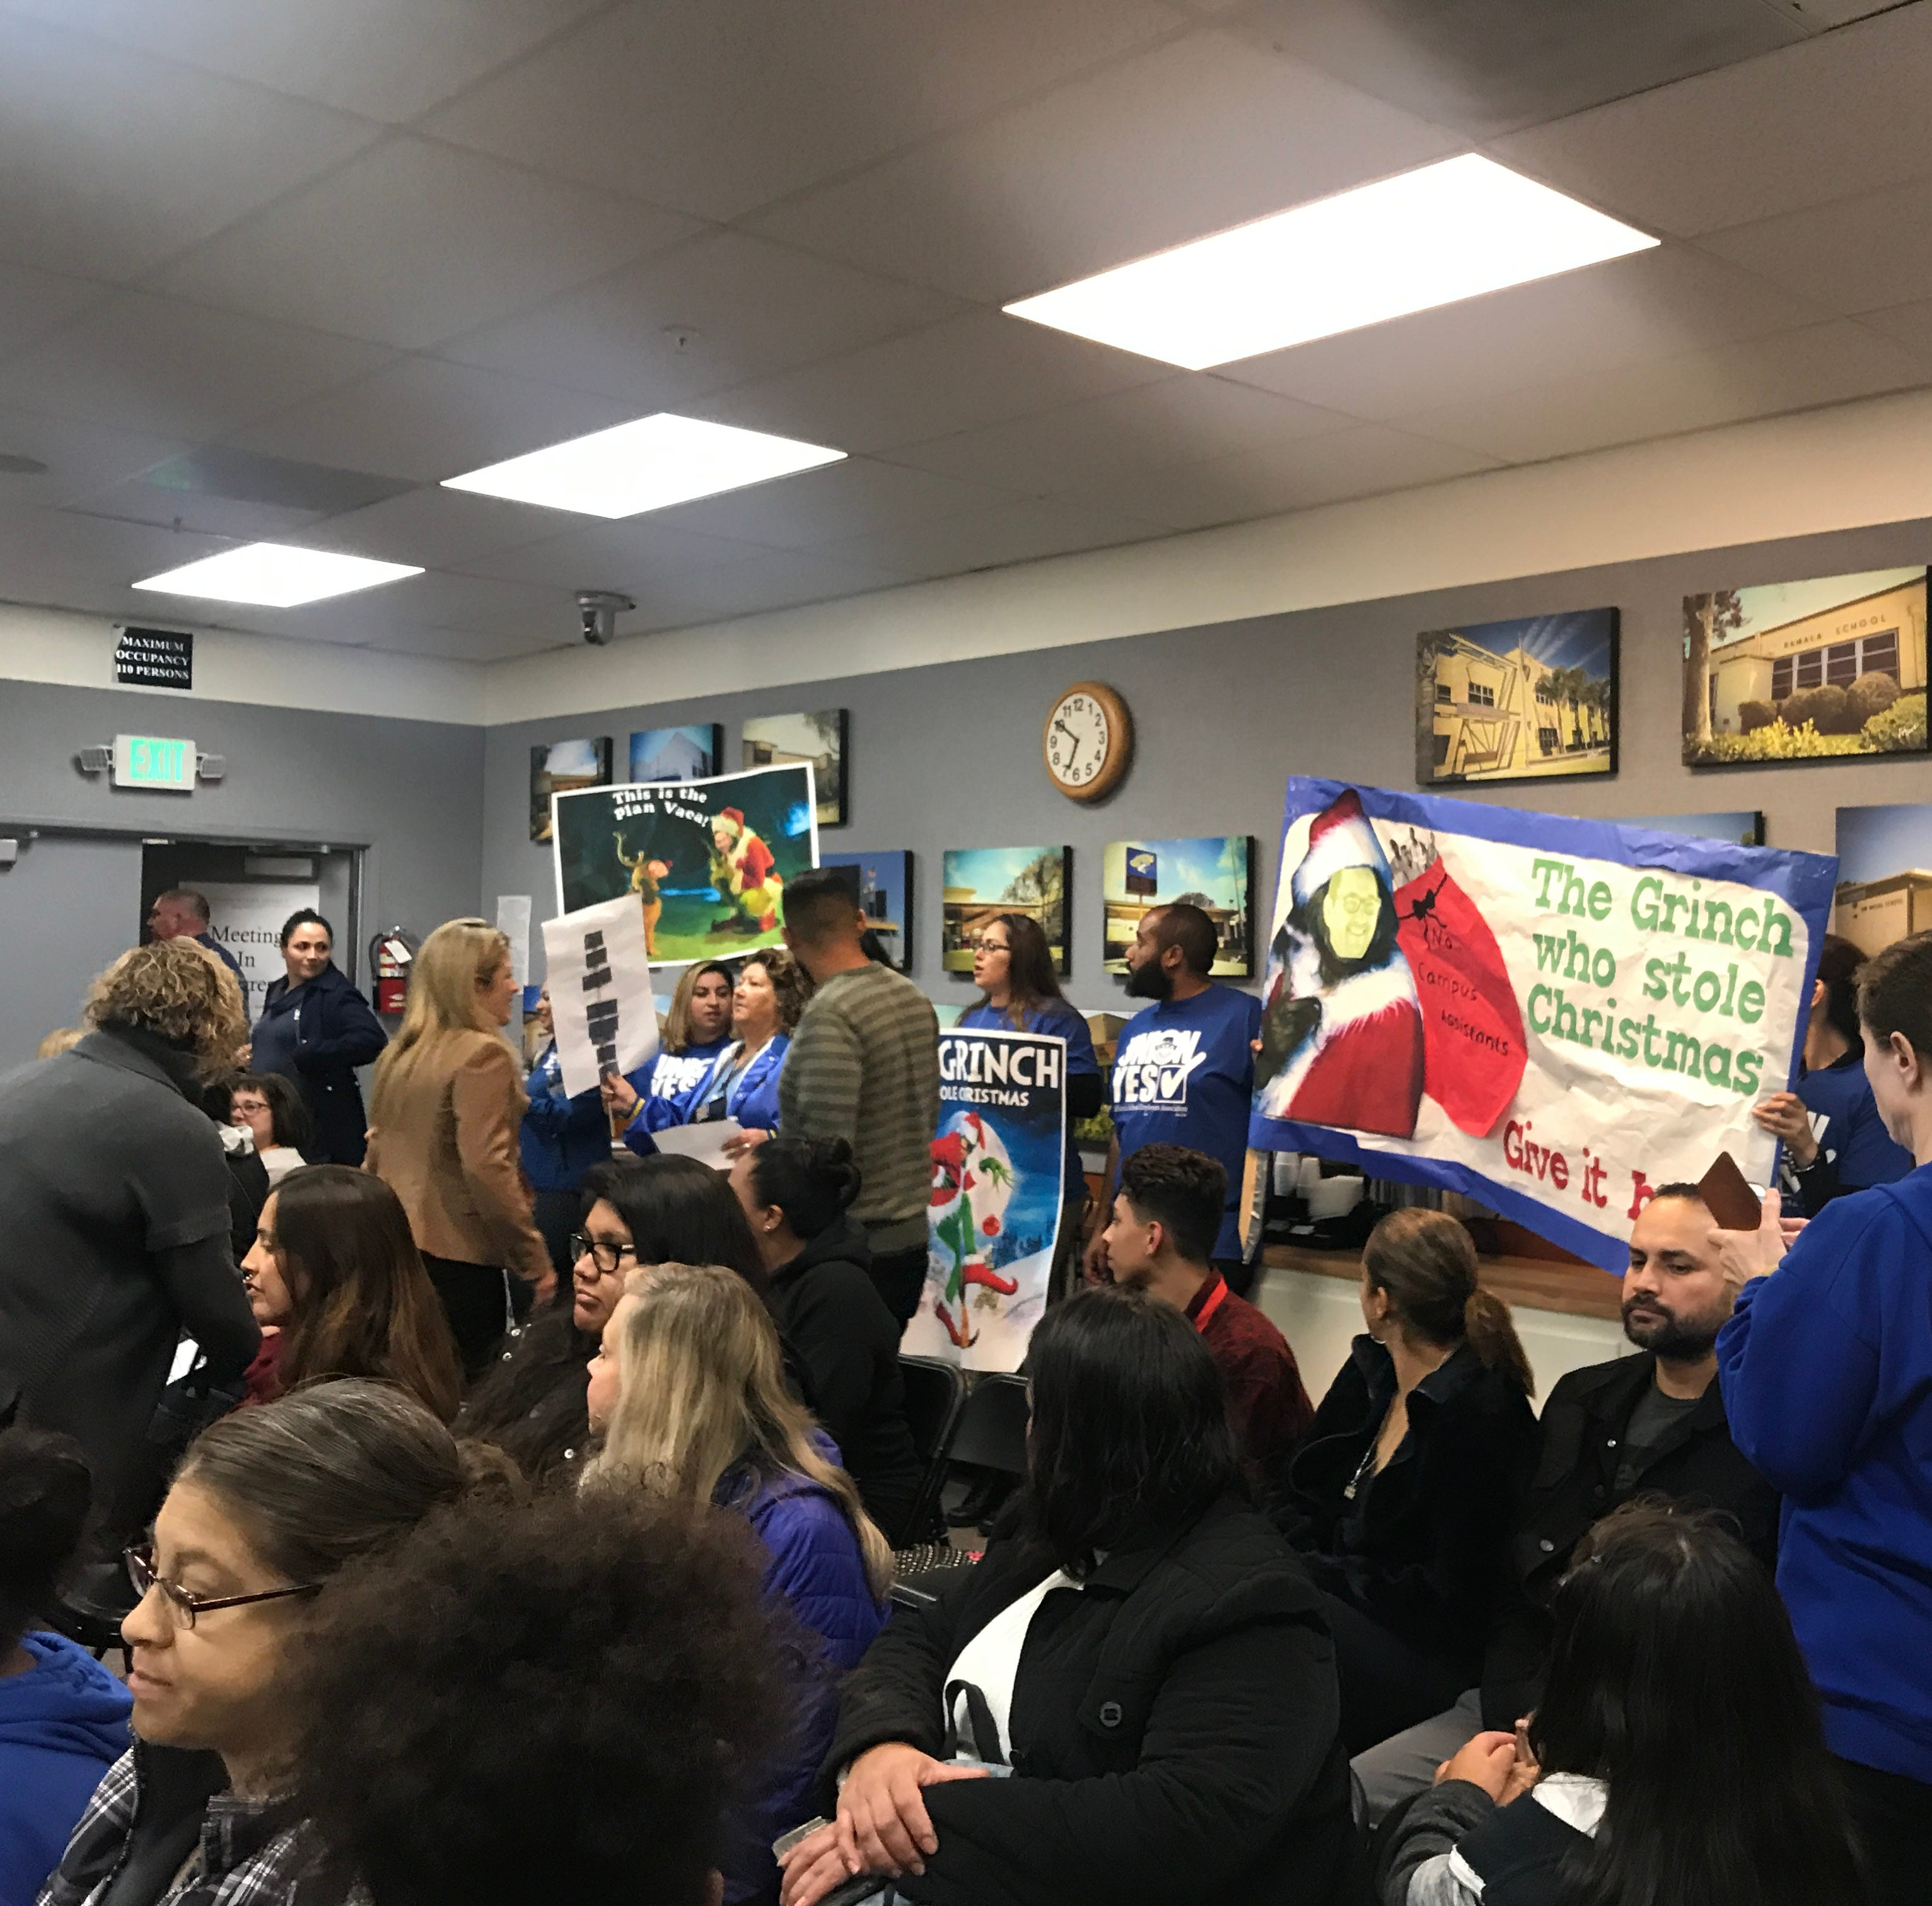 Oxnard school board votes to keep current campus assistants in heated hours-long meeting